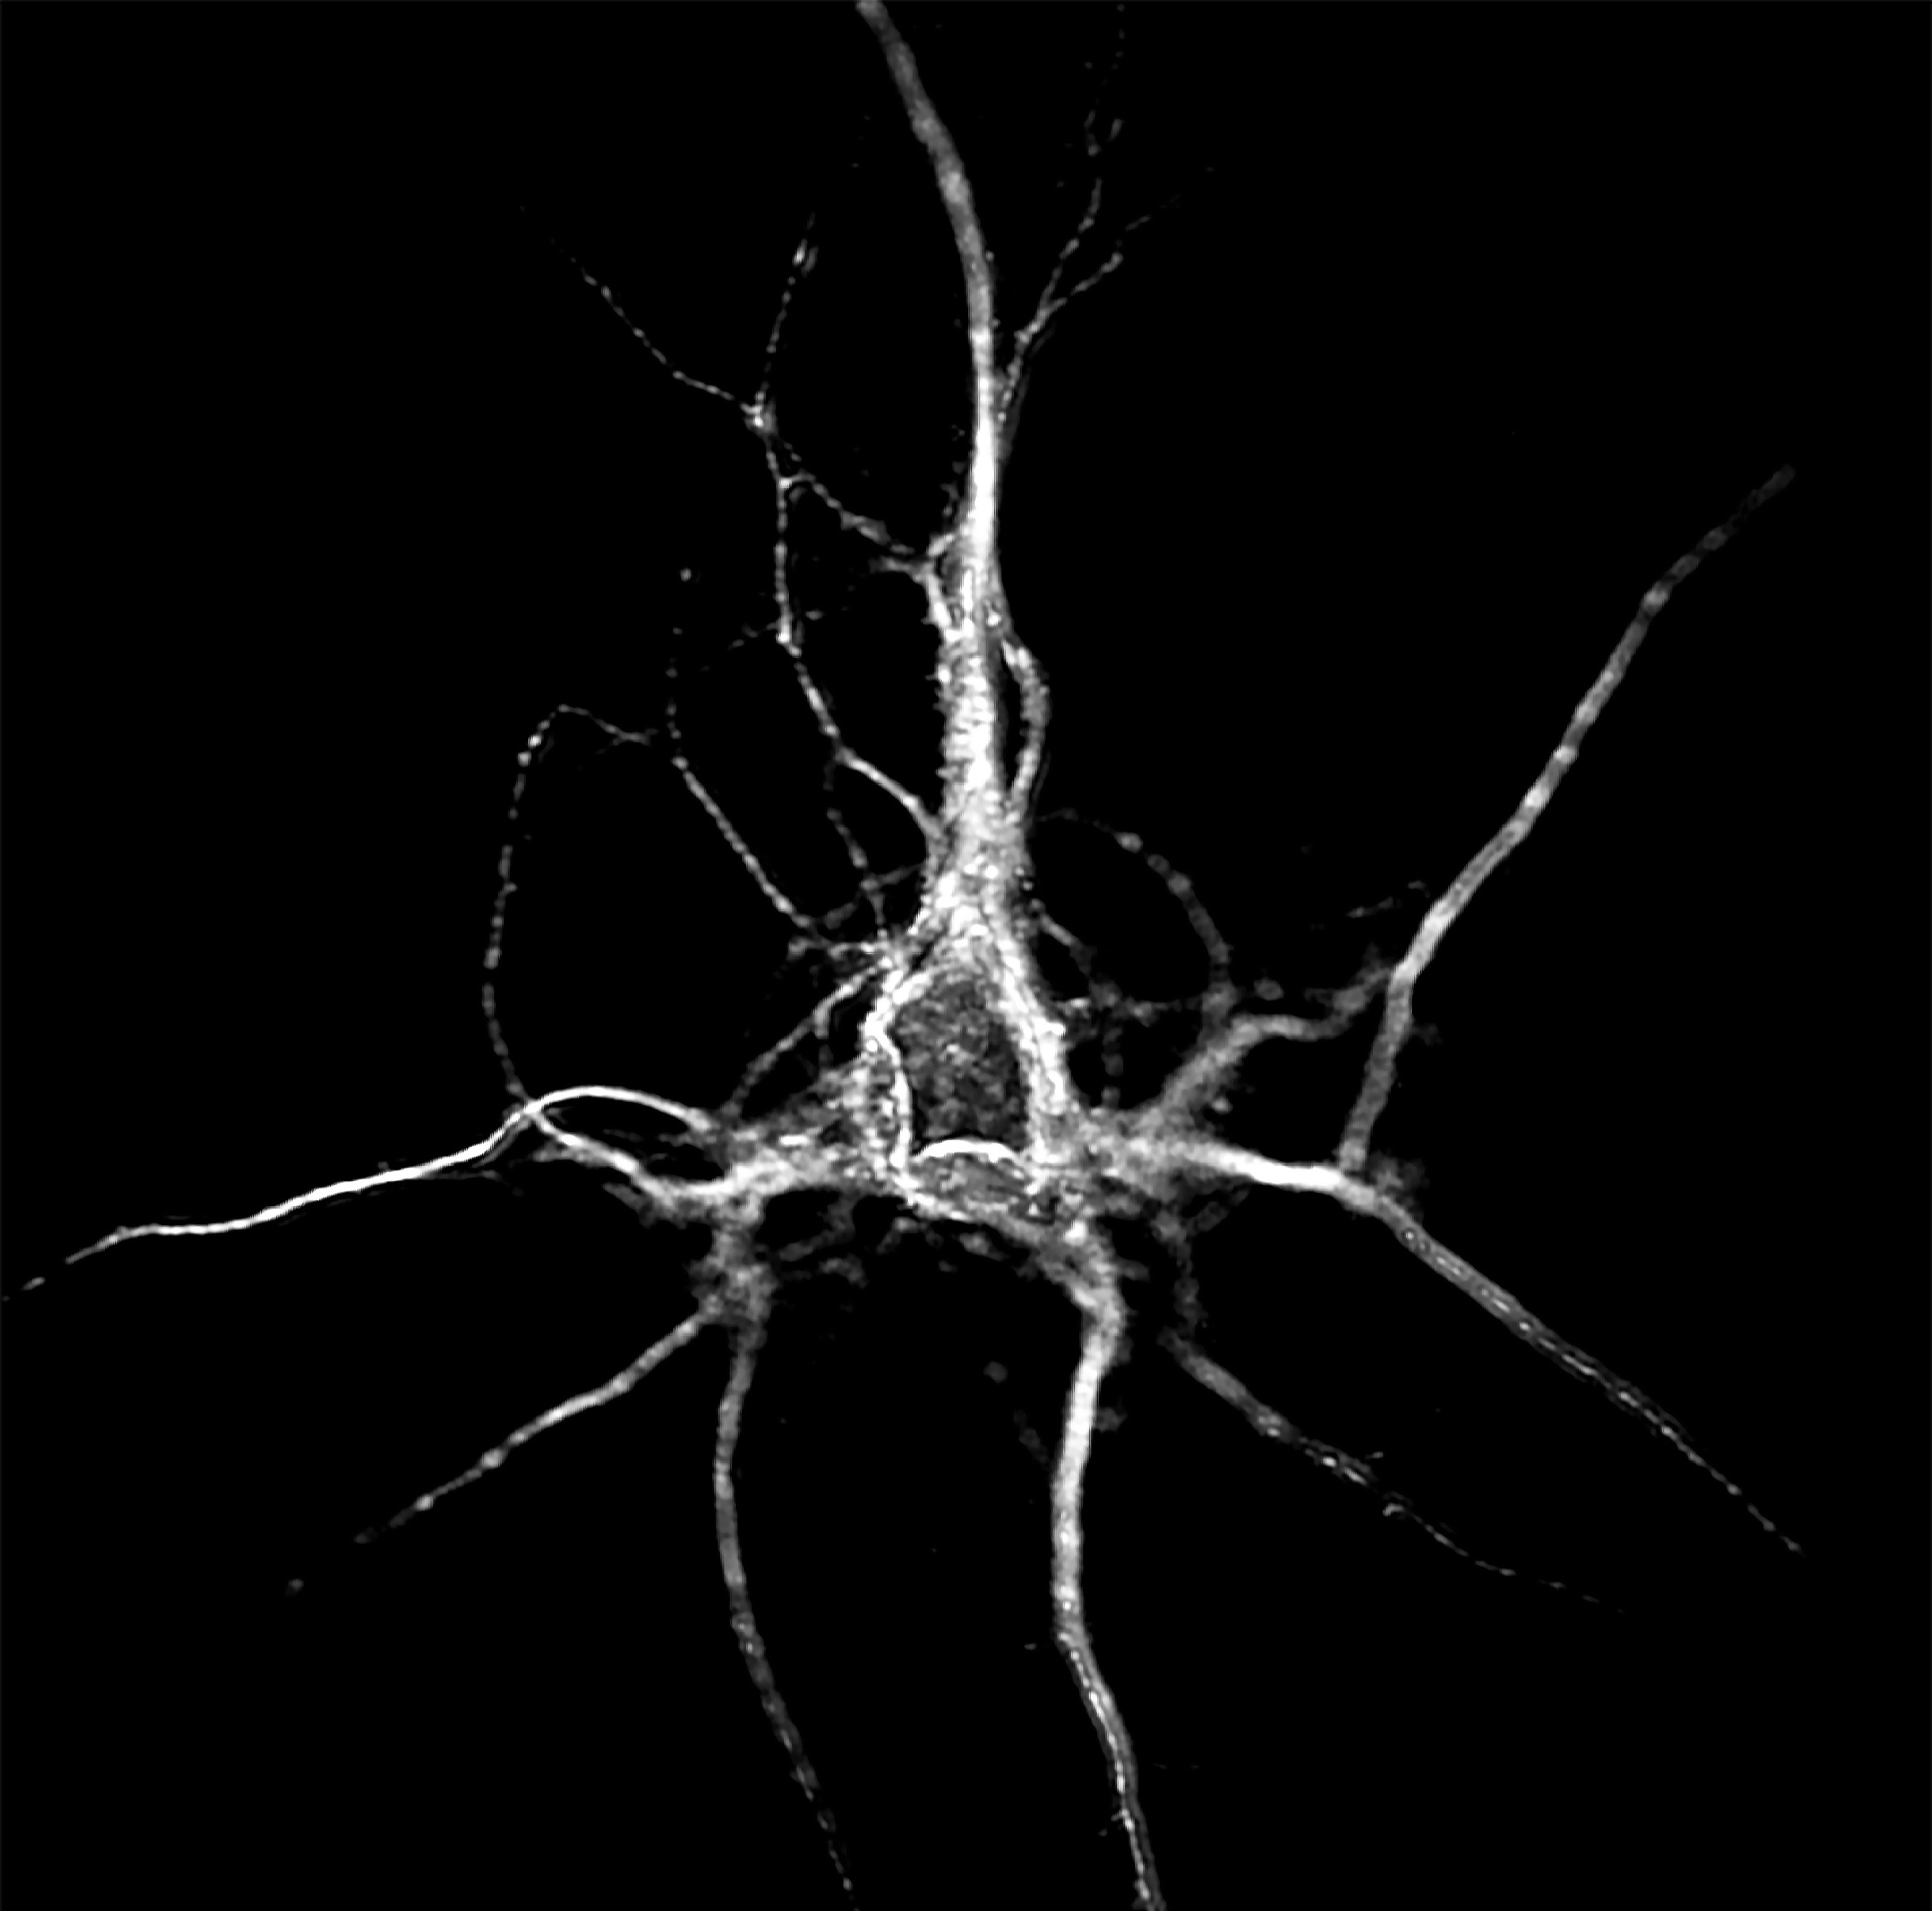 Cortical neuron